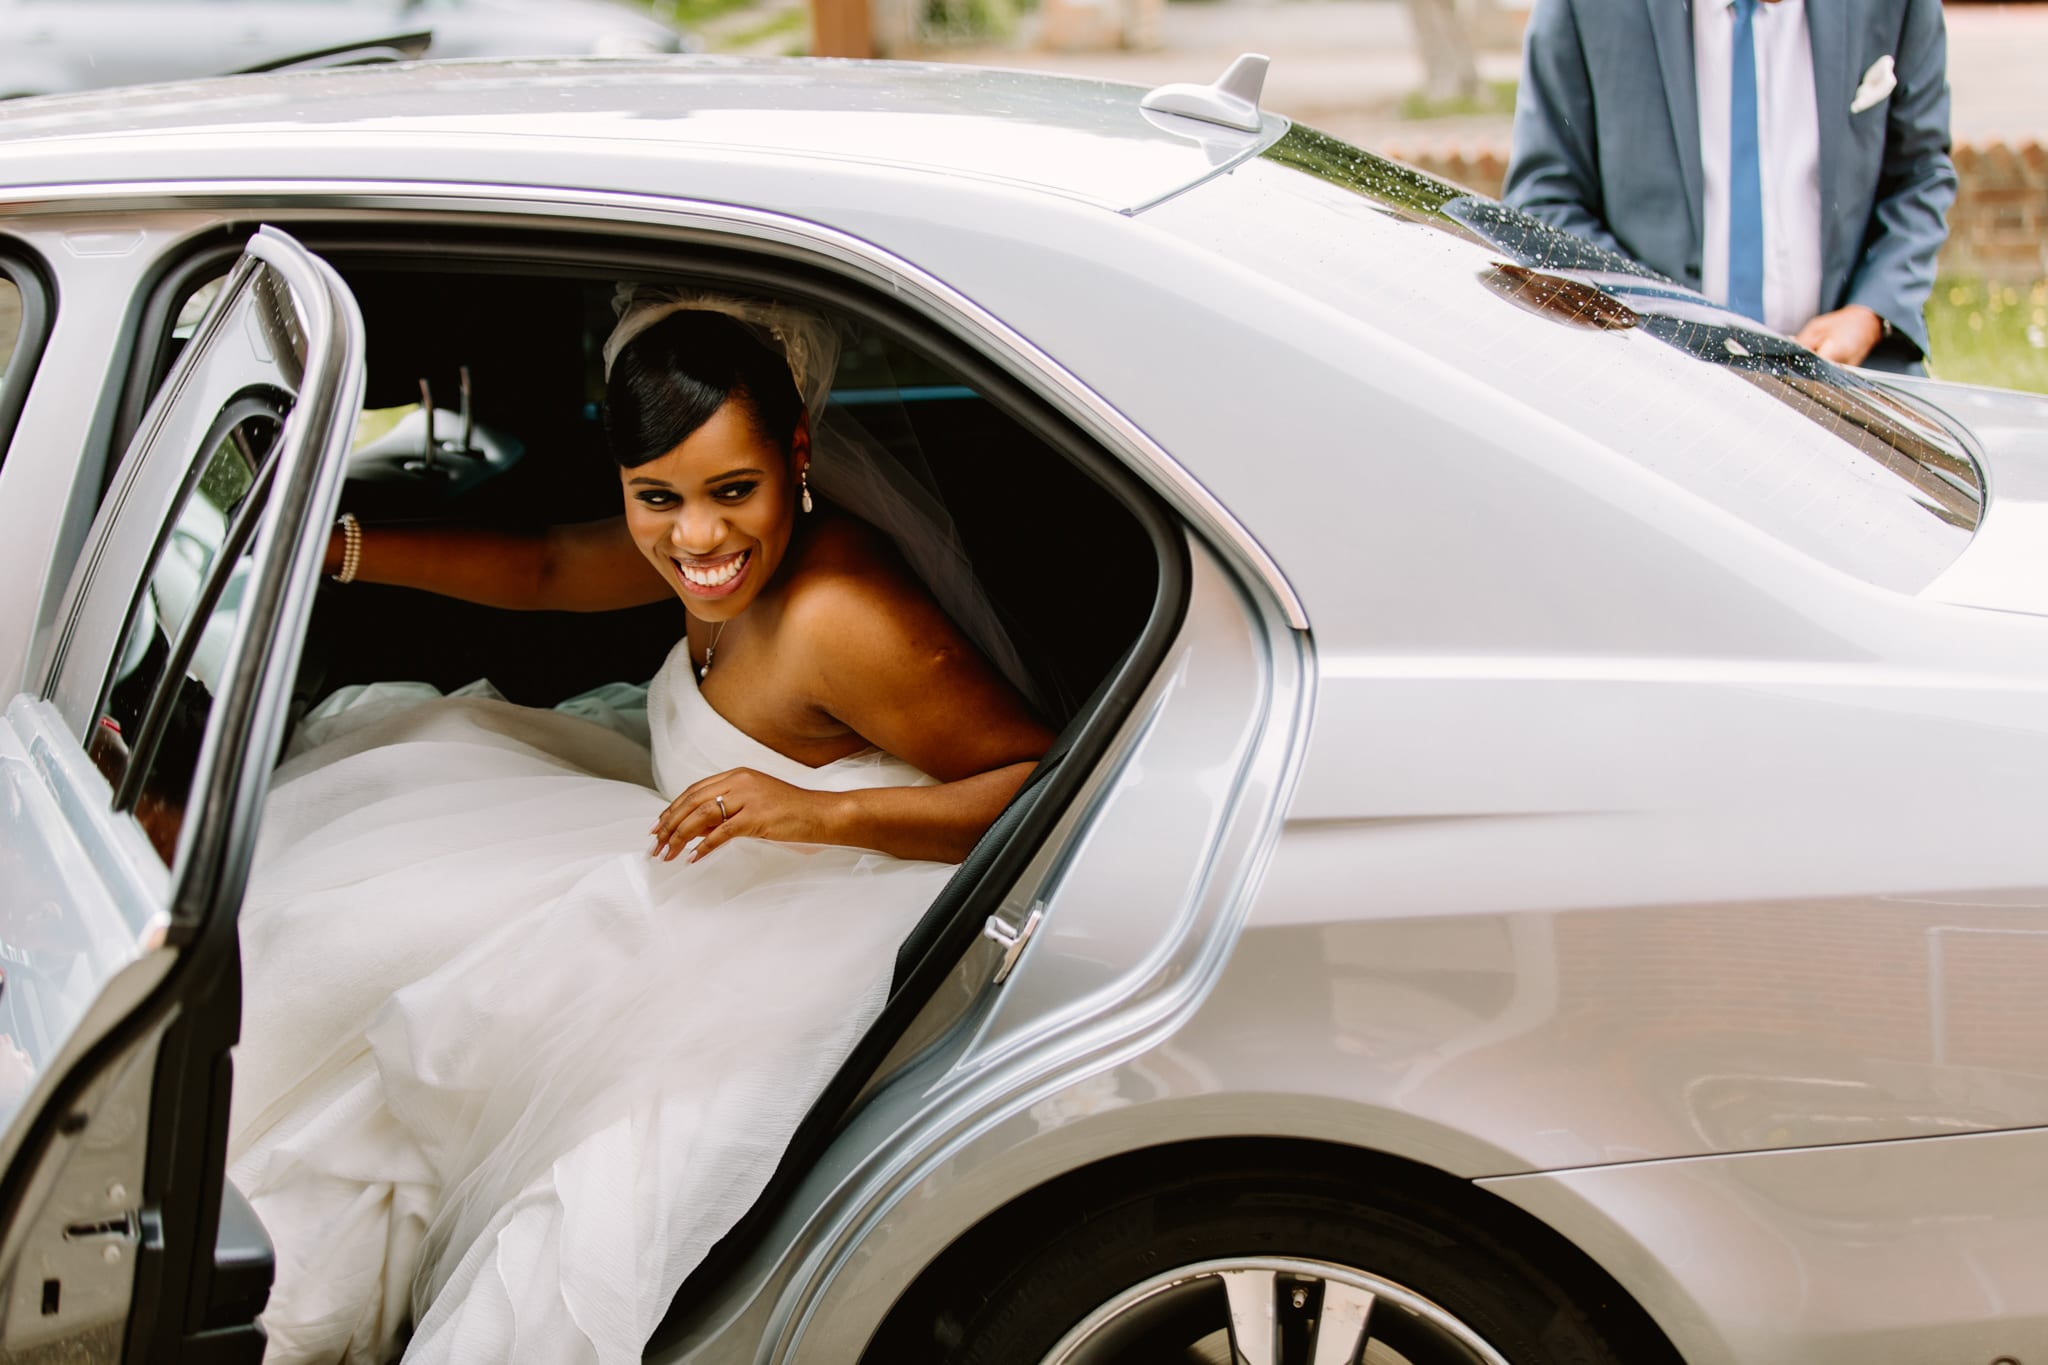 Bride arriving by car at church to be married